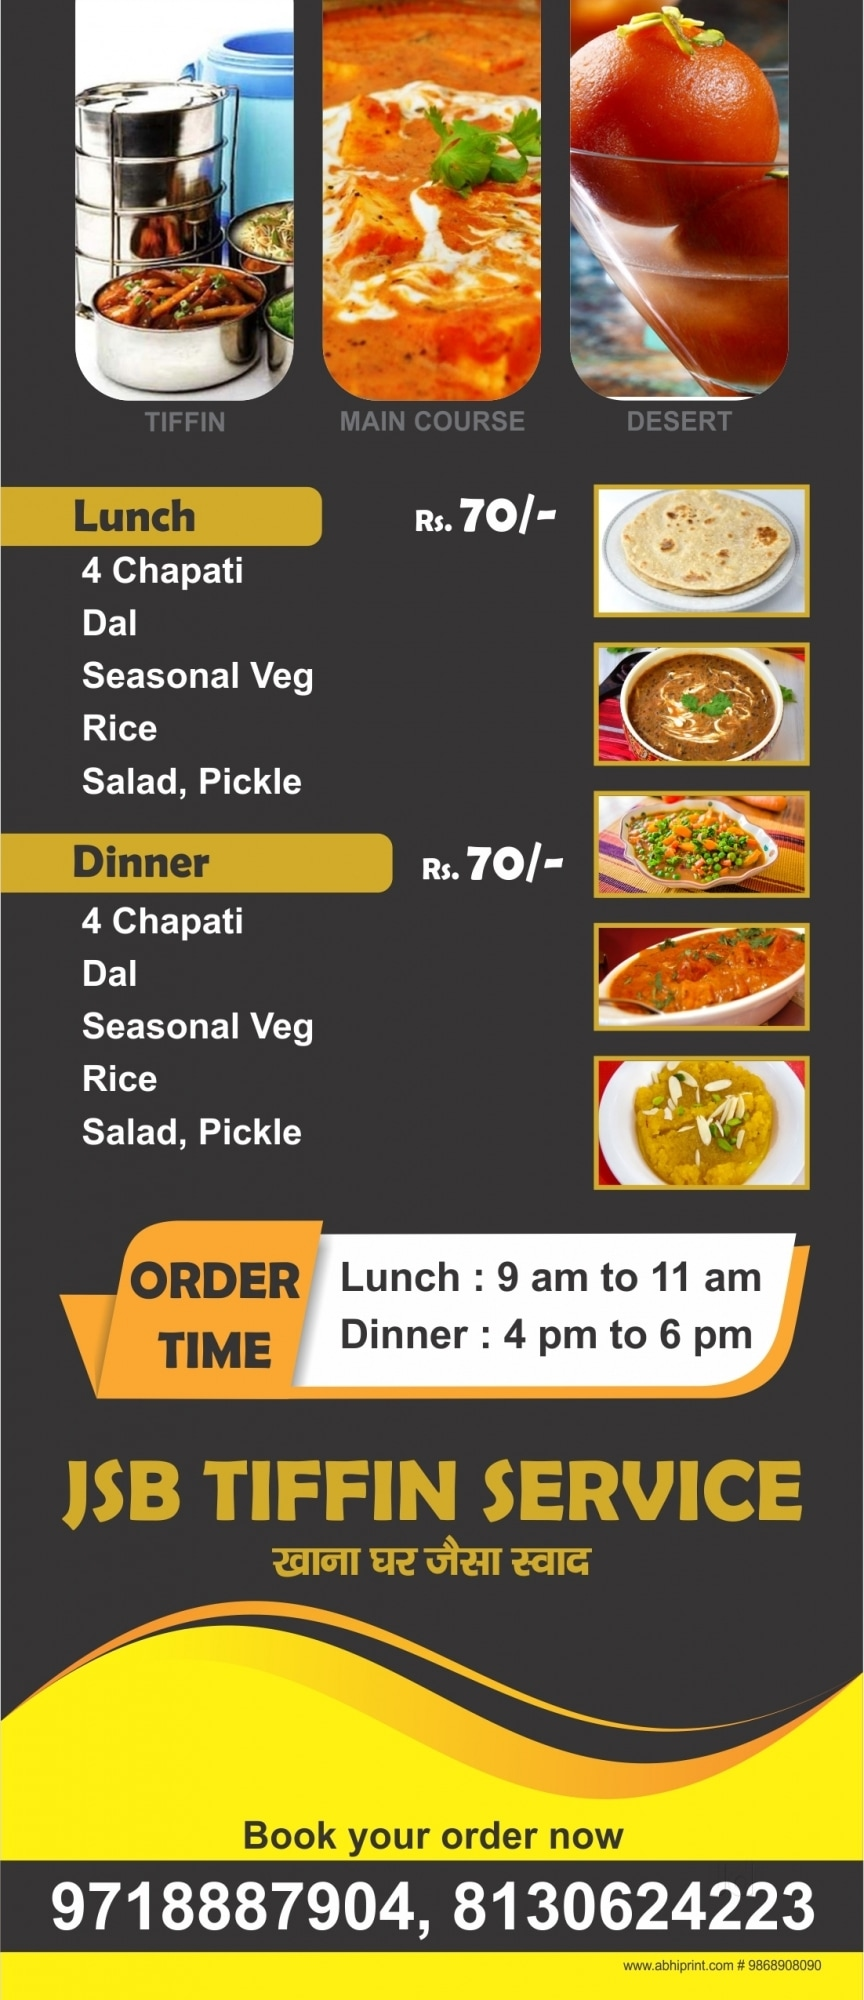 Top Tiffin Services For Marwadi Food in Rohini Sector 16